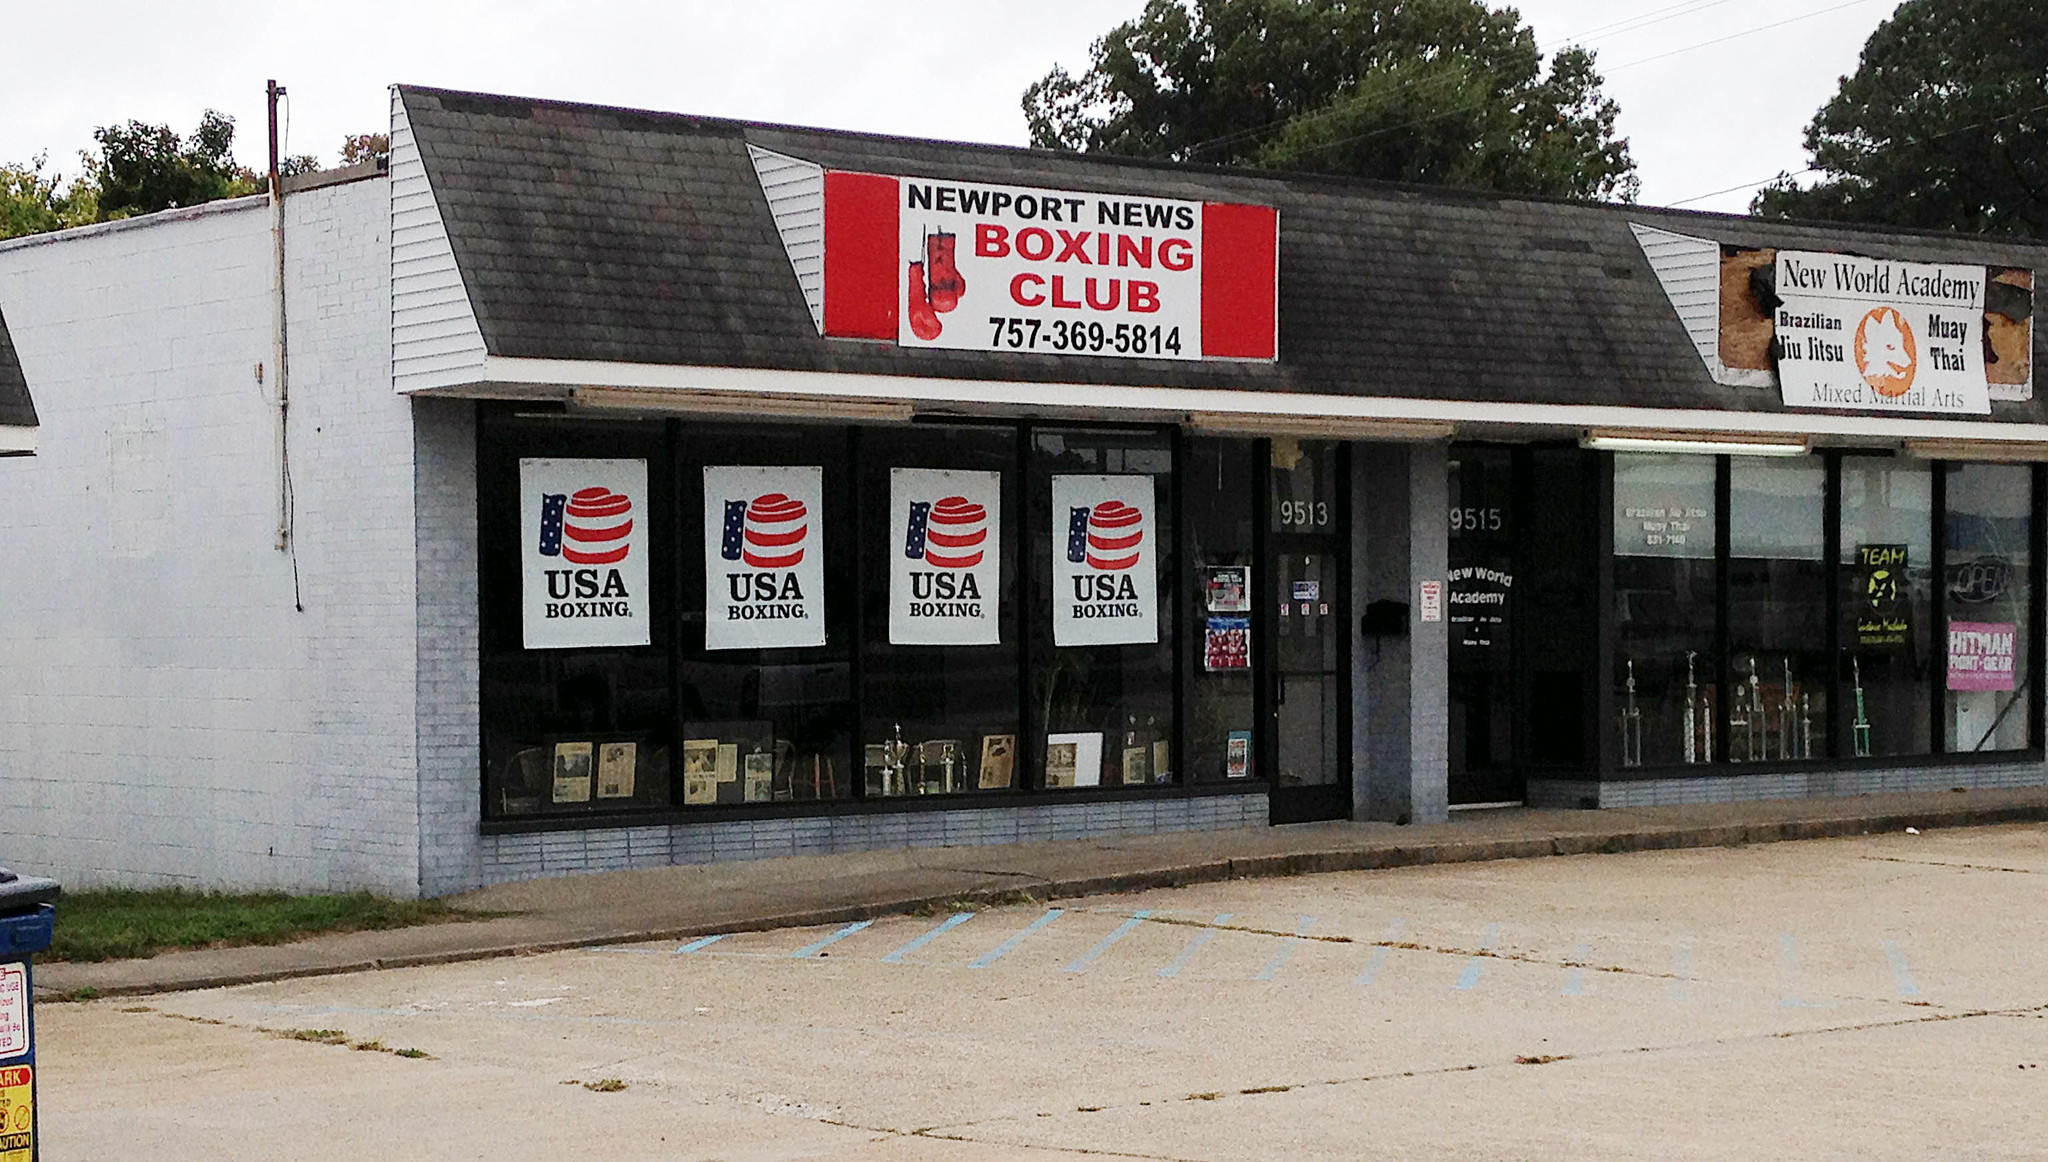 Newport News Boxing Club has reopened at its former location at 9513 Warwick Boulevard after a stint at a facility in York County. Coach and owner Lloyd Jones has trained boxers locally since 1990, and also works with at-risk youth and those looking to get fit.